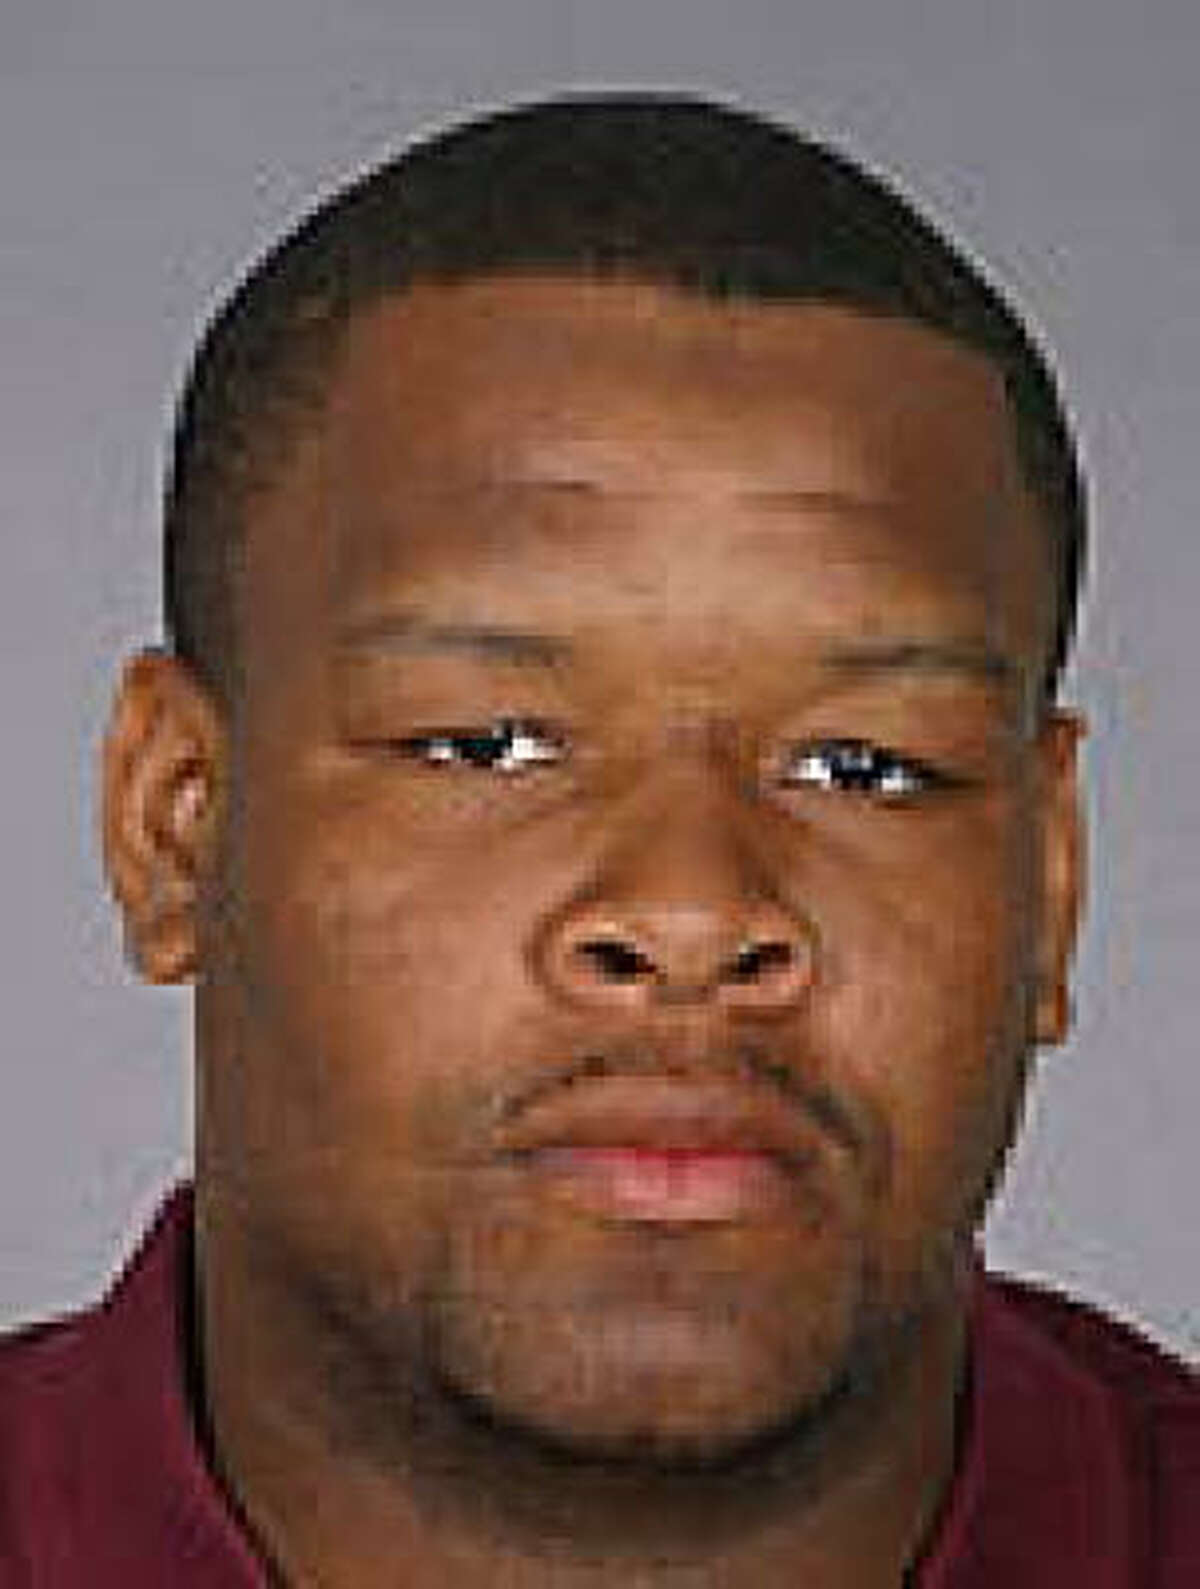 Johnny Jolly was arrested July 8 in Houston for a possession of at least 200 grams of codeine, according to a criminal complaint. He was drafted by the Green Bay Packers in 2006 out of Texas A&M.